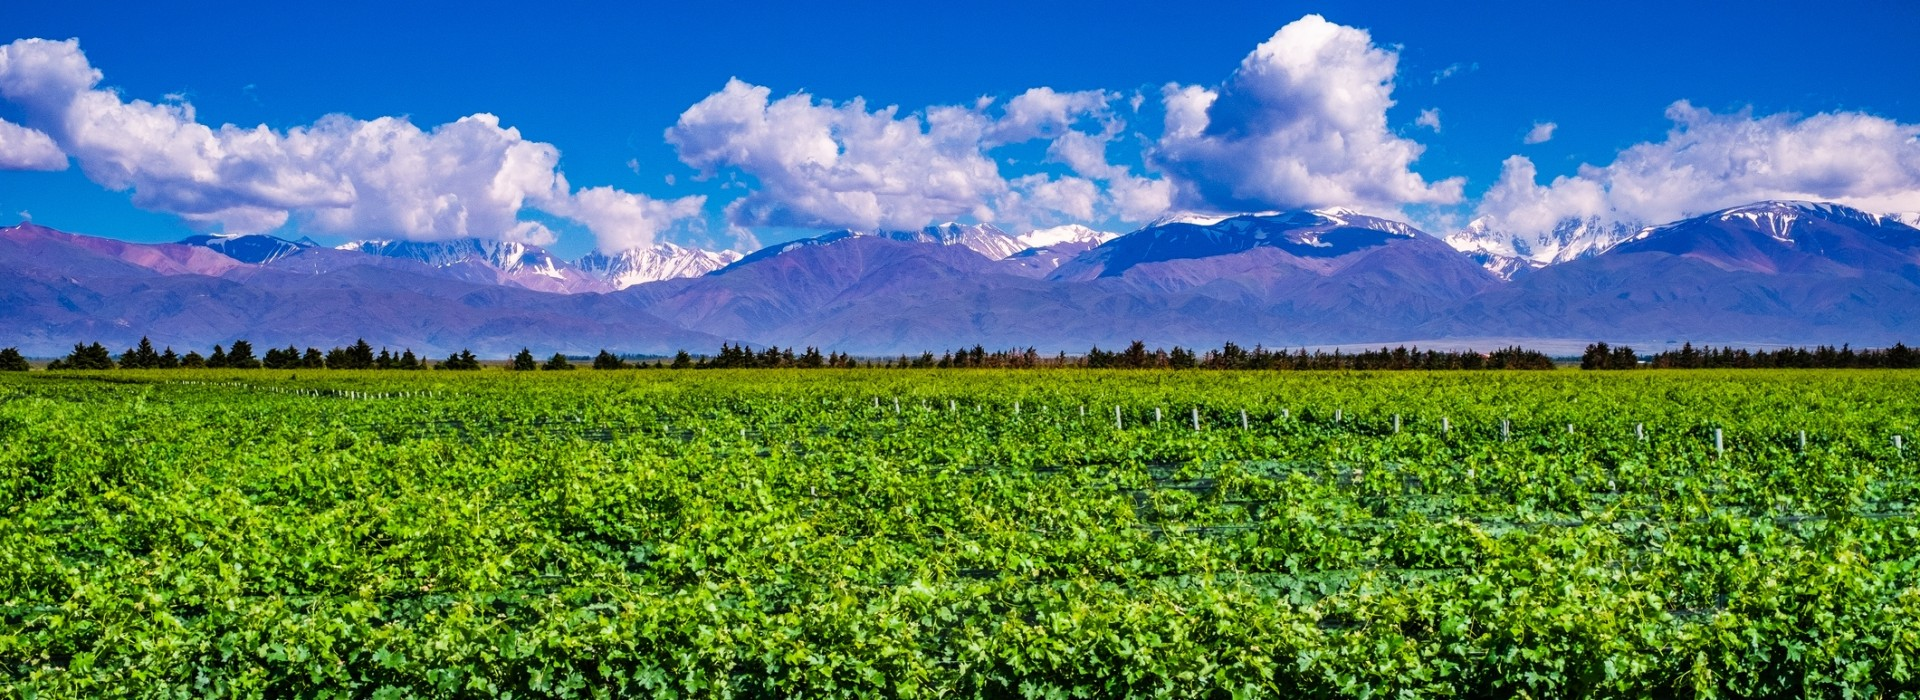 Mendoza Tours and Holidays 2019/2020